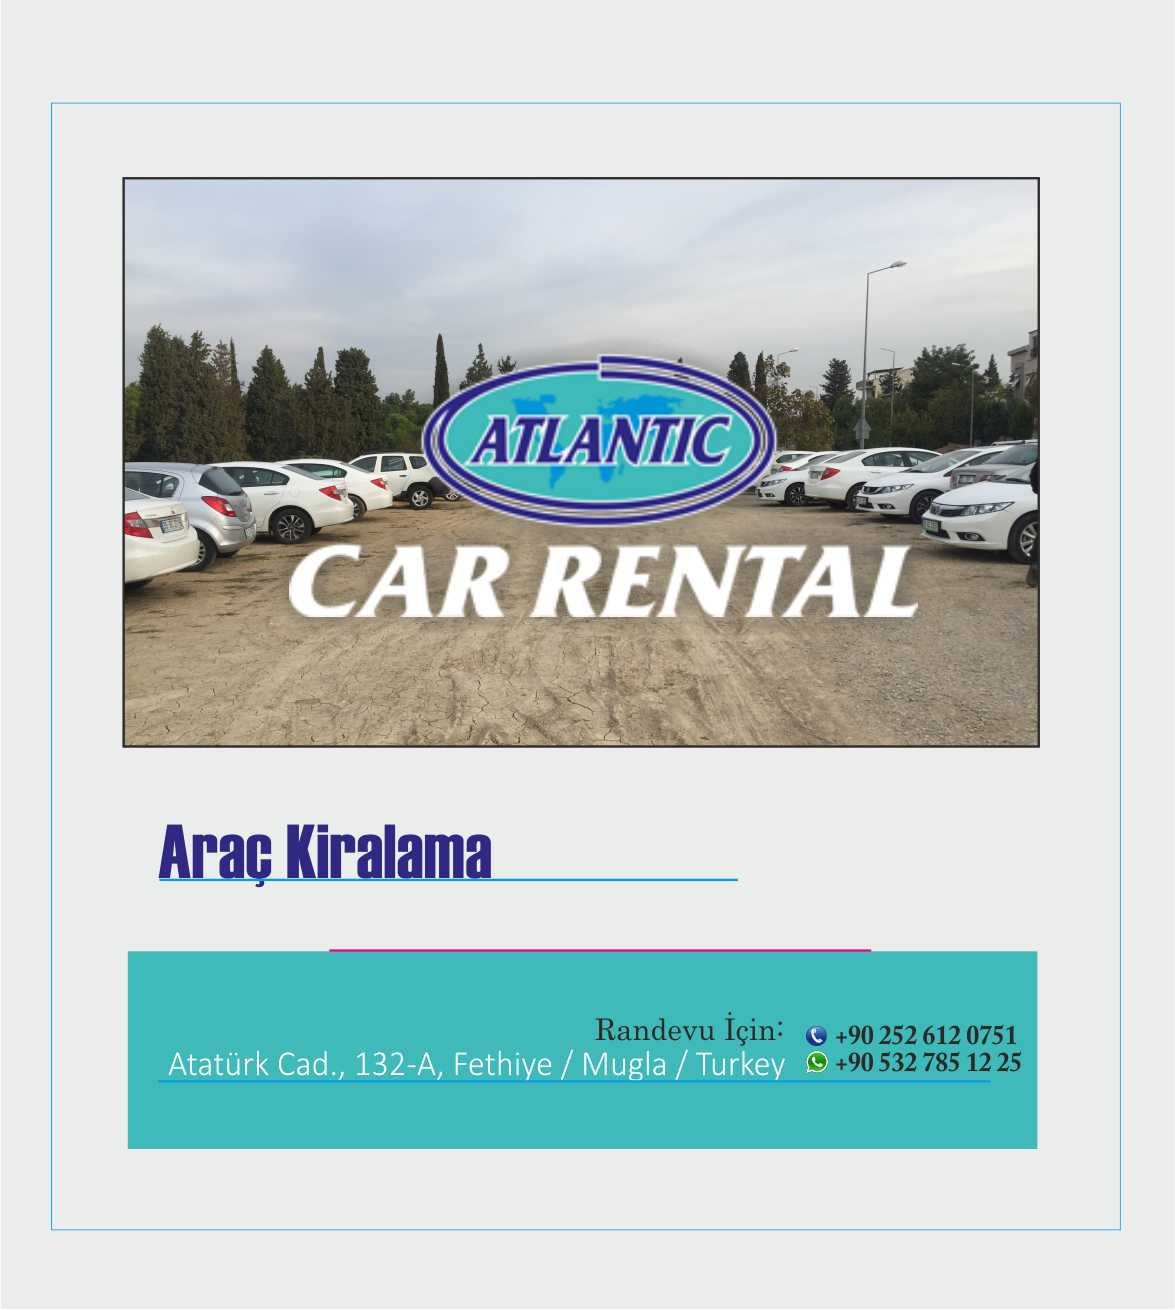 kaş rent a car firmaları %>